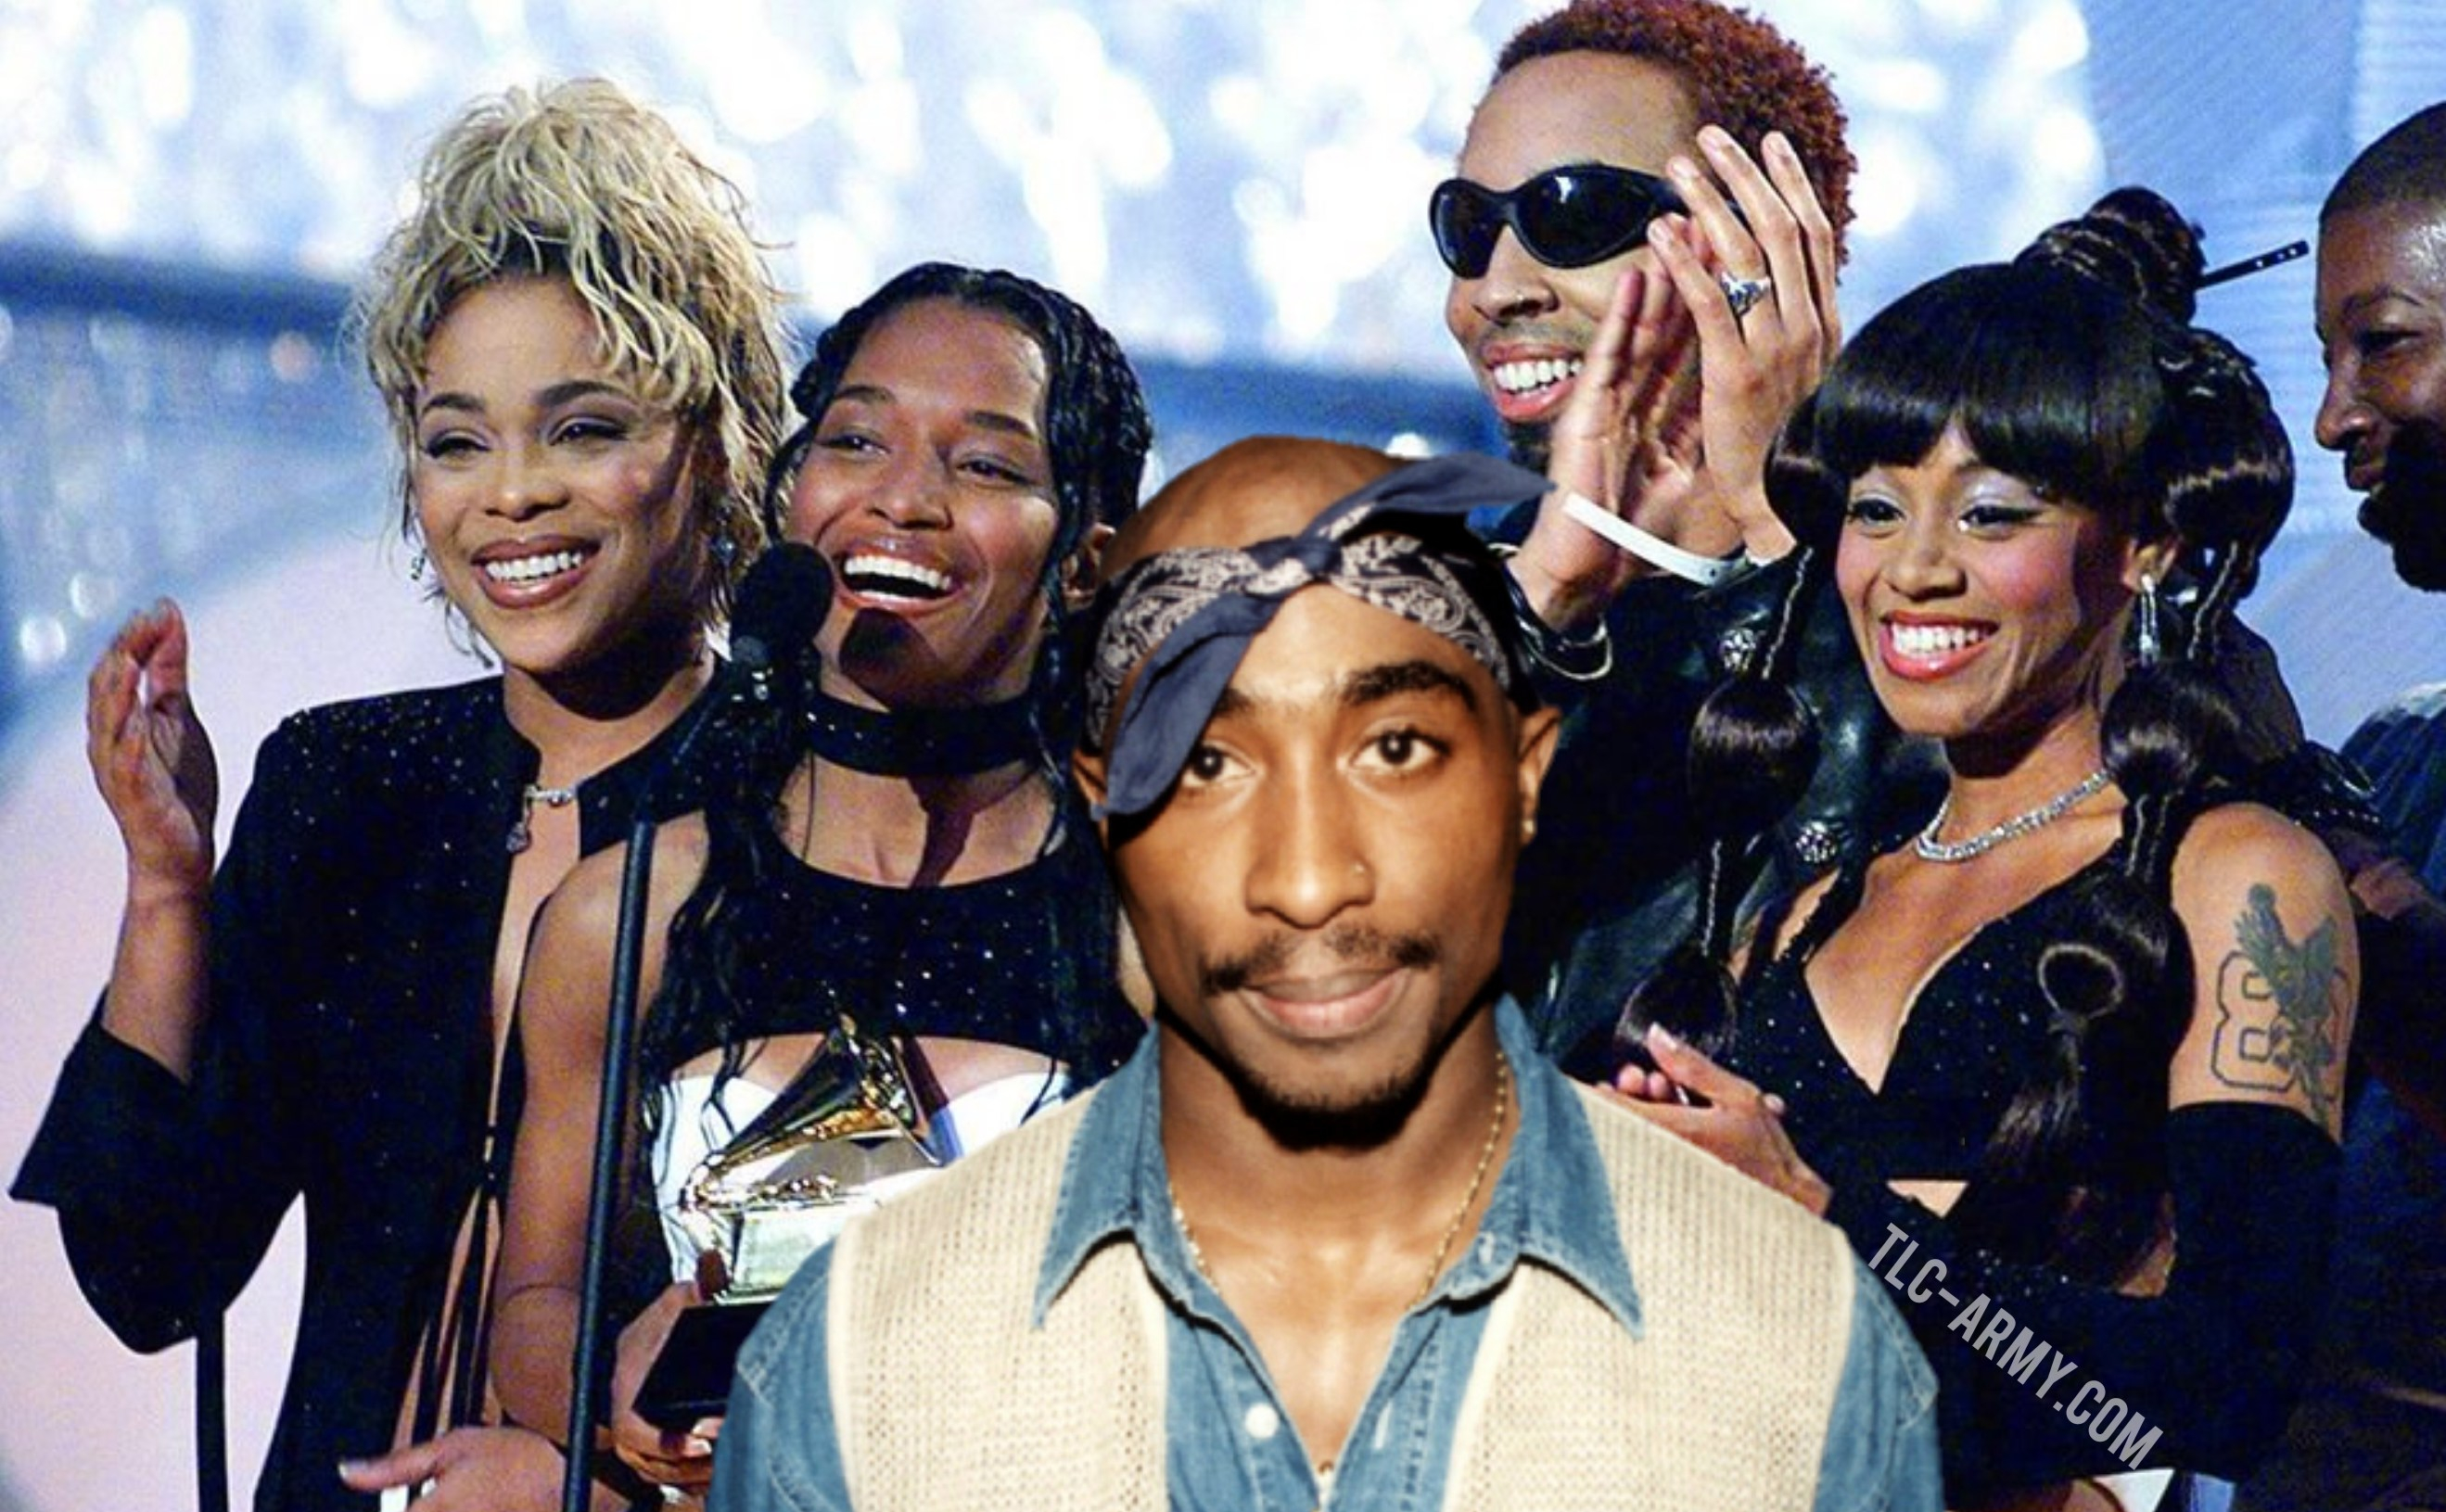 Dallas Austin: 2Pac Tells Left Eye 'Controversy Sells', Channeling Chilli Break-Up Through Pink Album, Death Row and TLC's Deal with Pebbles